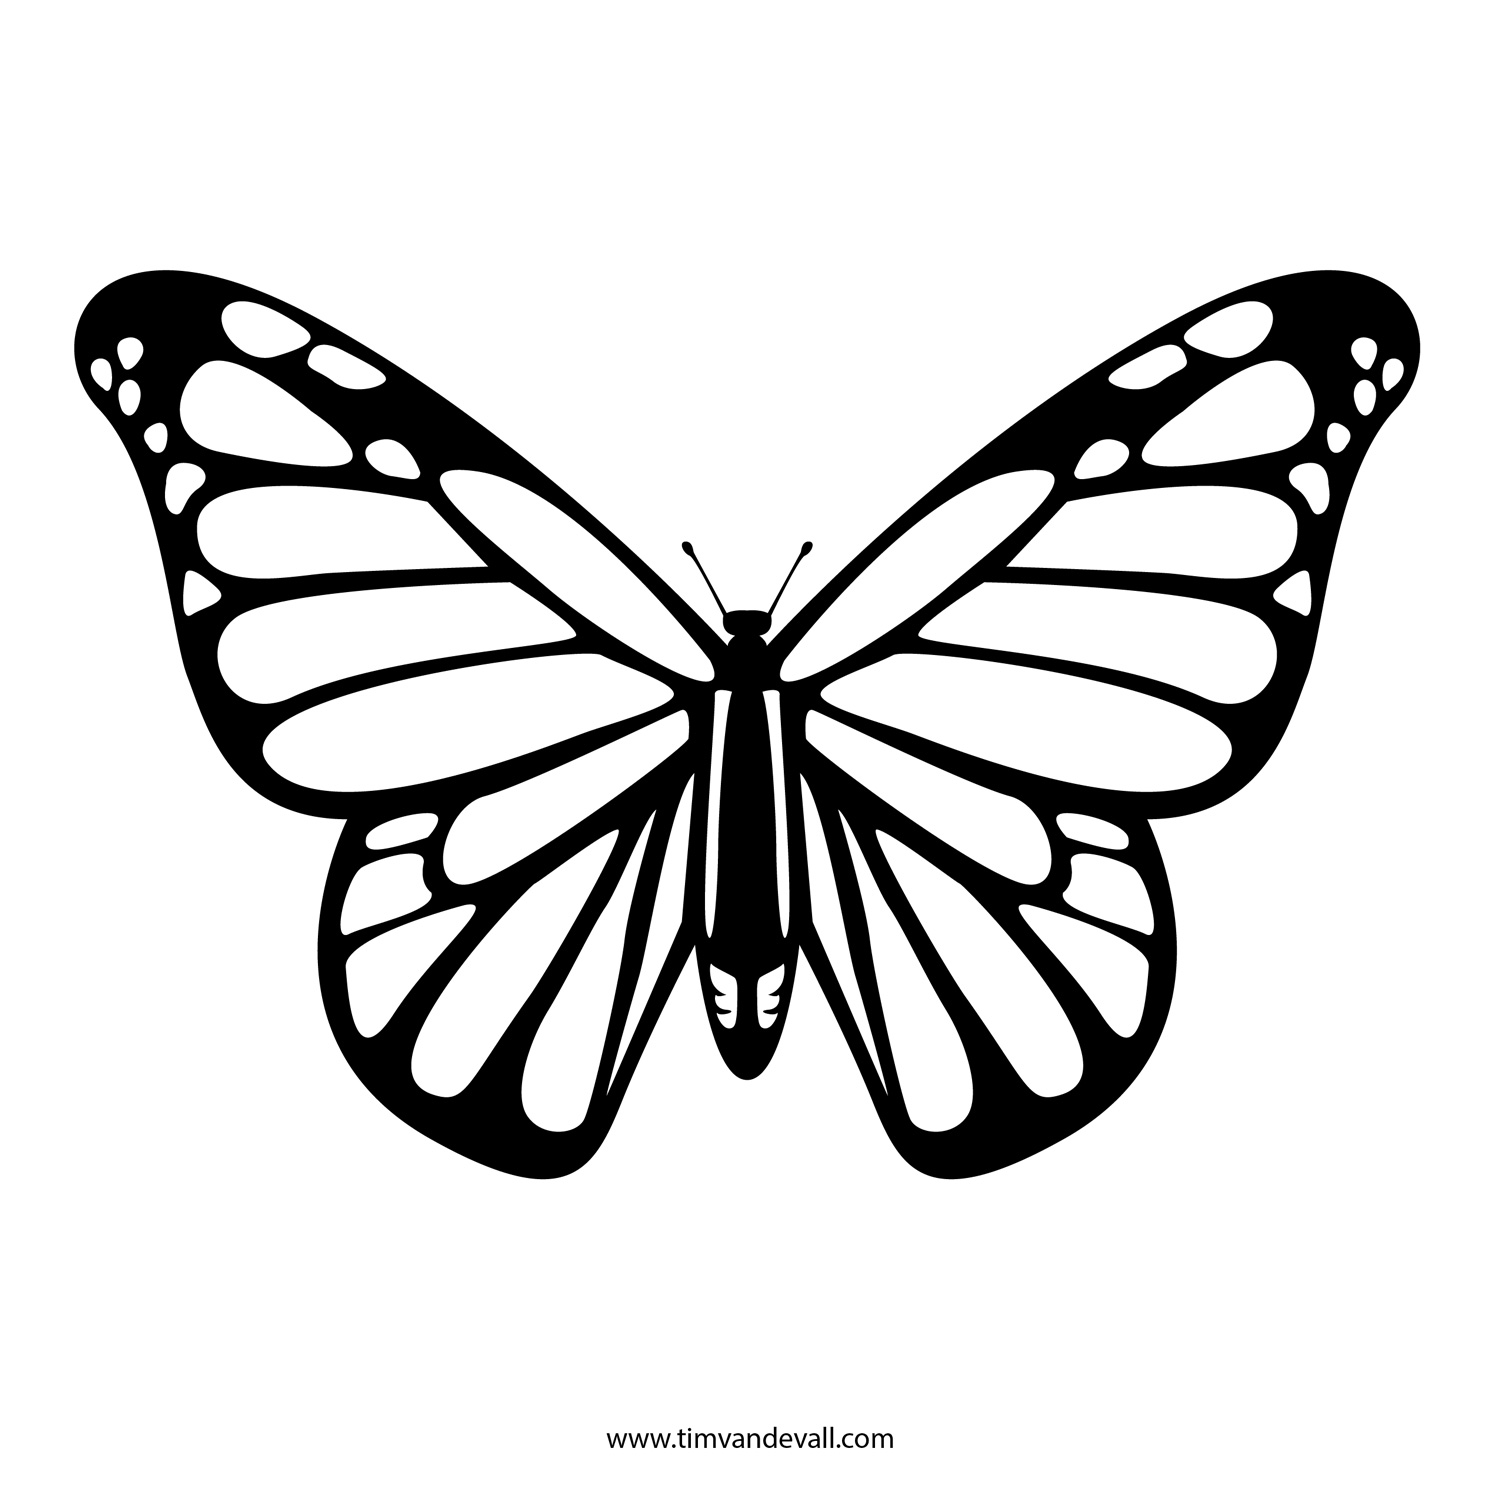 5 Images of Free Printable Butterfly Stencils